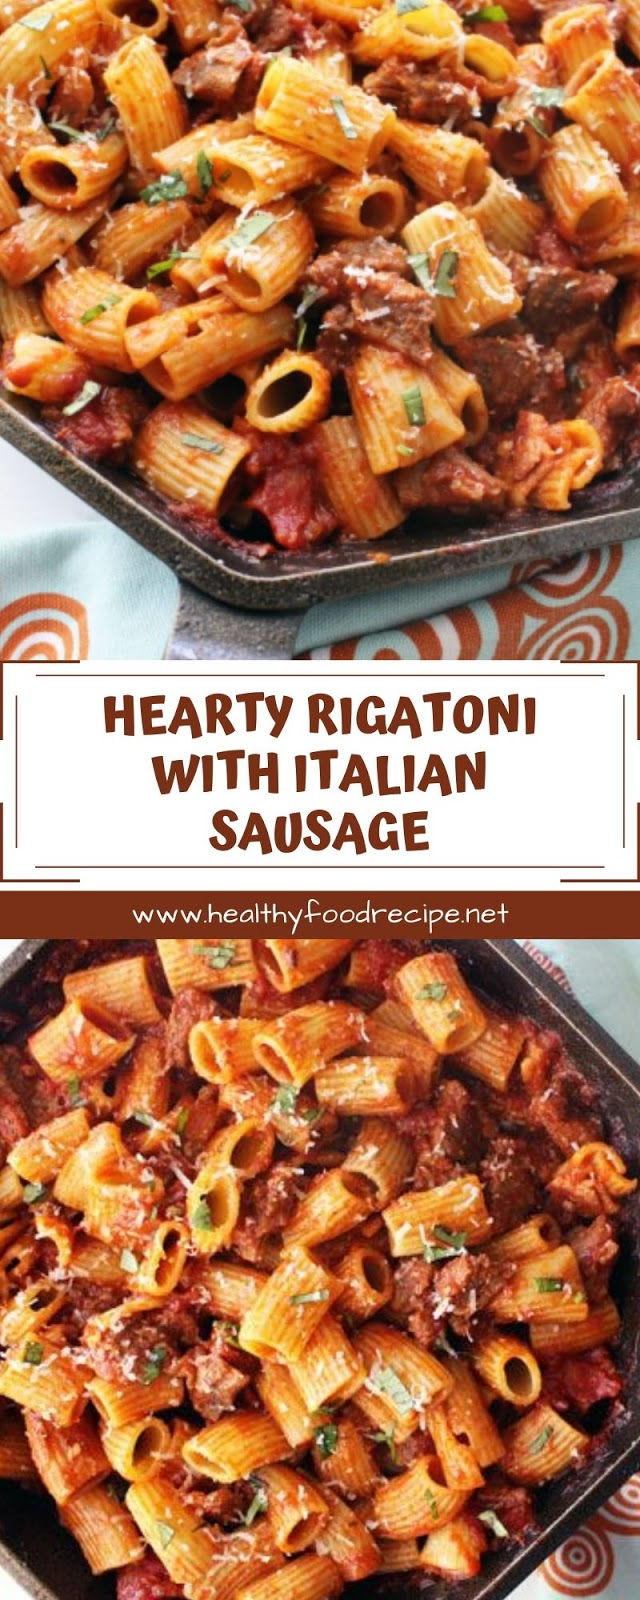 HEARTY RIGATONI WITH ITALIAN SAUSAGE